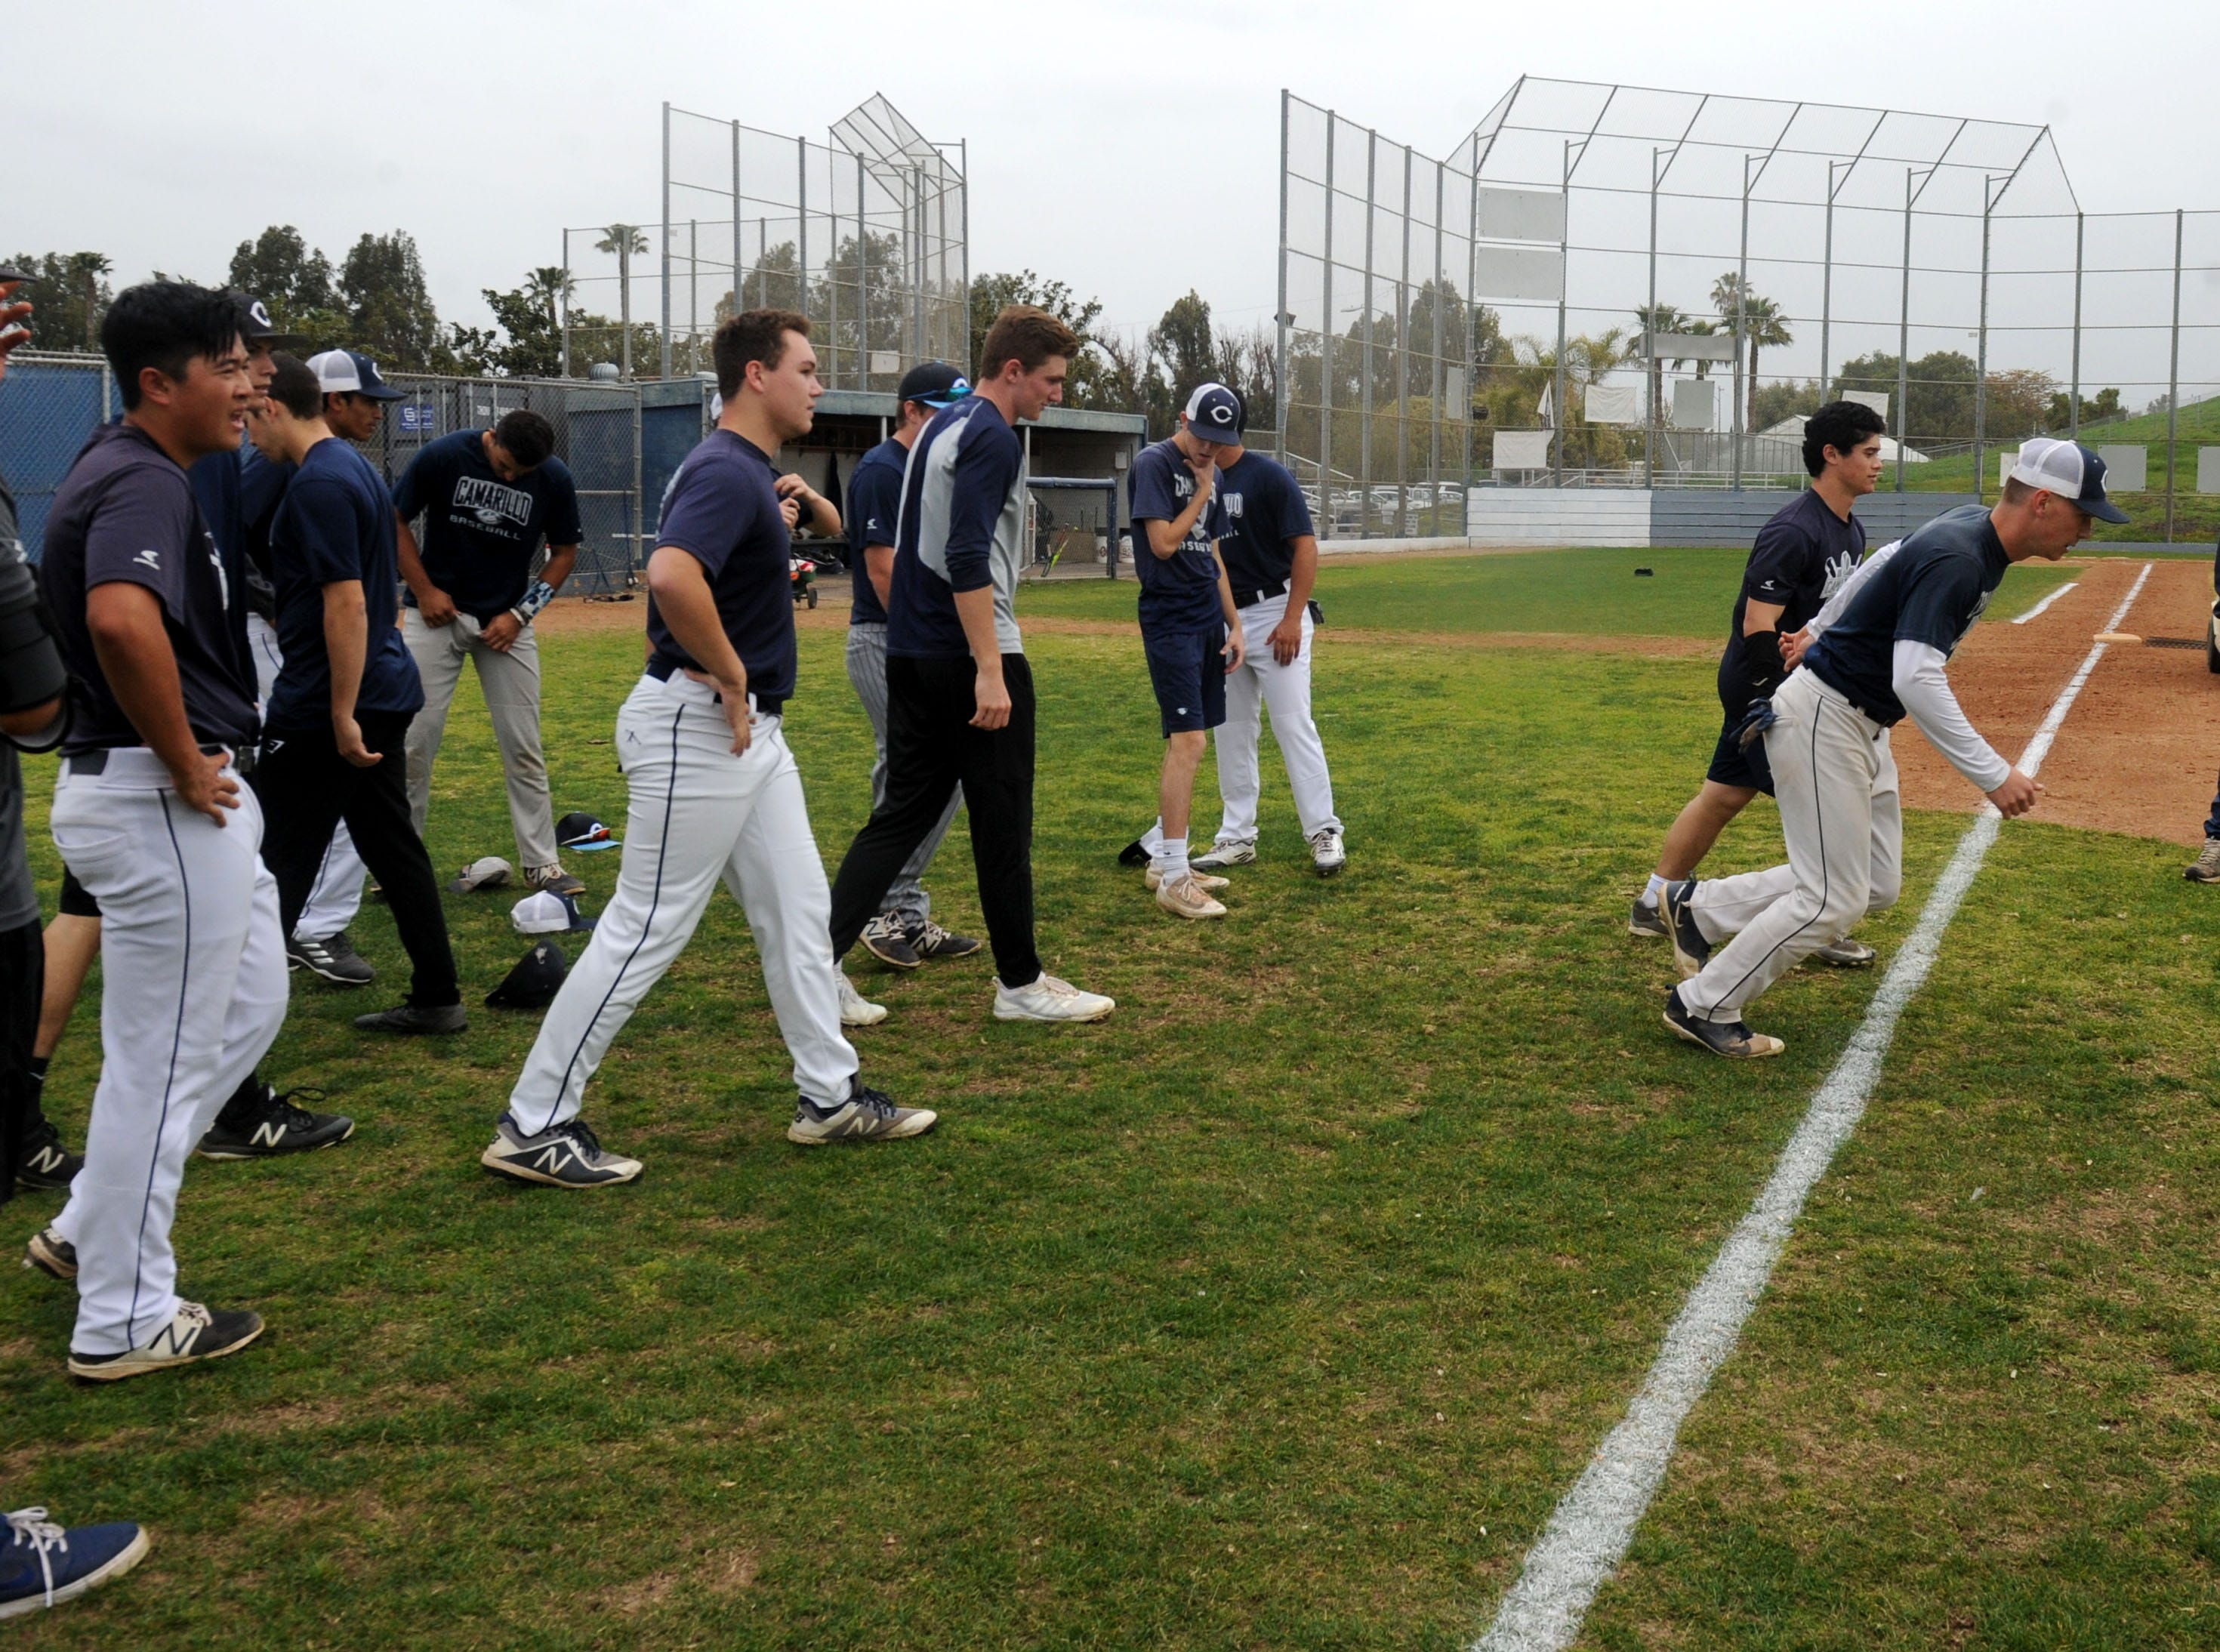 Camarillo High baseball players run a few laps around the field during Wednesday's practice.